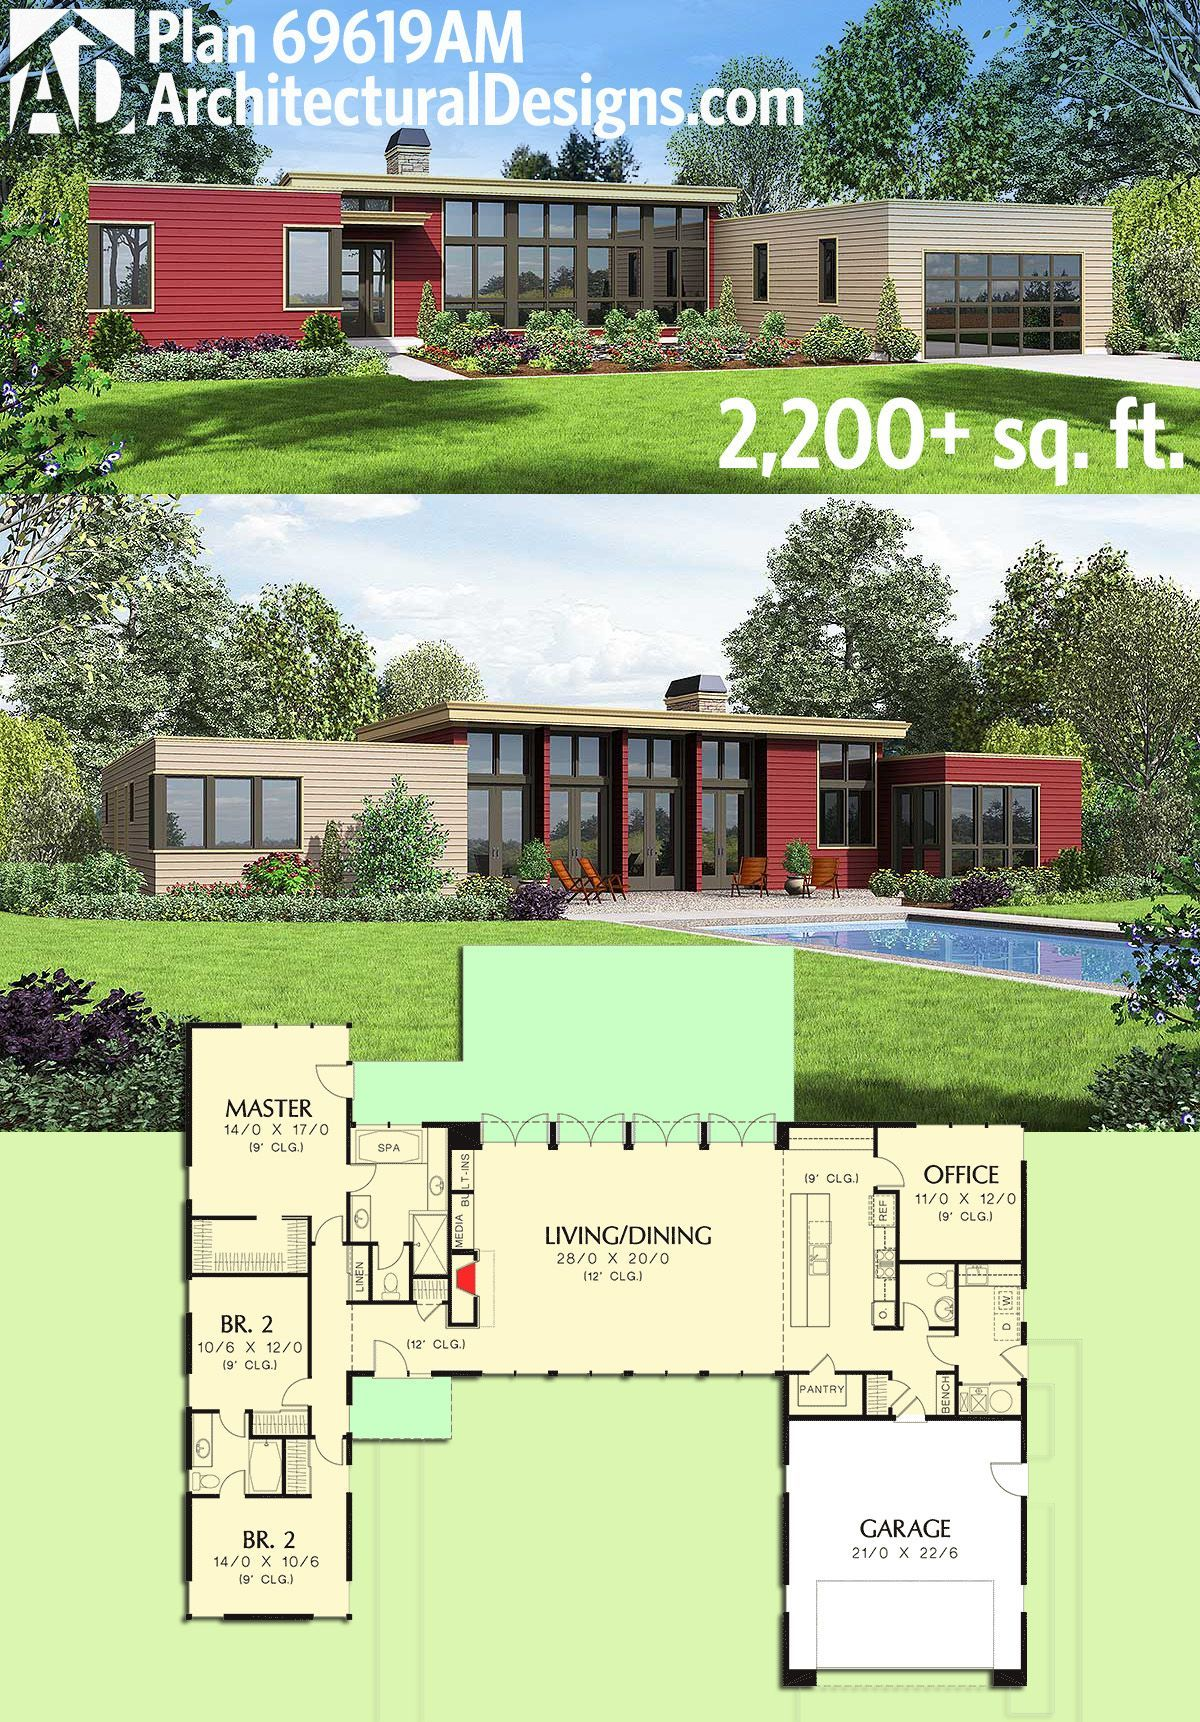 d38537d8c80c0aa4d3914cb16cfab0a6 Square Container House Floor Plans on container house windows, container house details, shipping container guest house plans, container office plans, container house doors, container homes, container remodeling, container house community, tiny house plans, 40 container house plans, container house layout, container house building, container garage plans, container house brochure, container building construction, container studio plans, storage container plans, container house bathrooms, cargo container house plans, container house design,